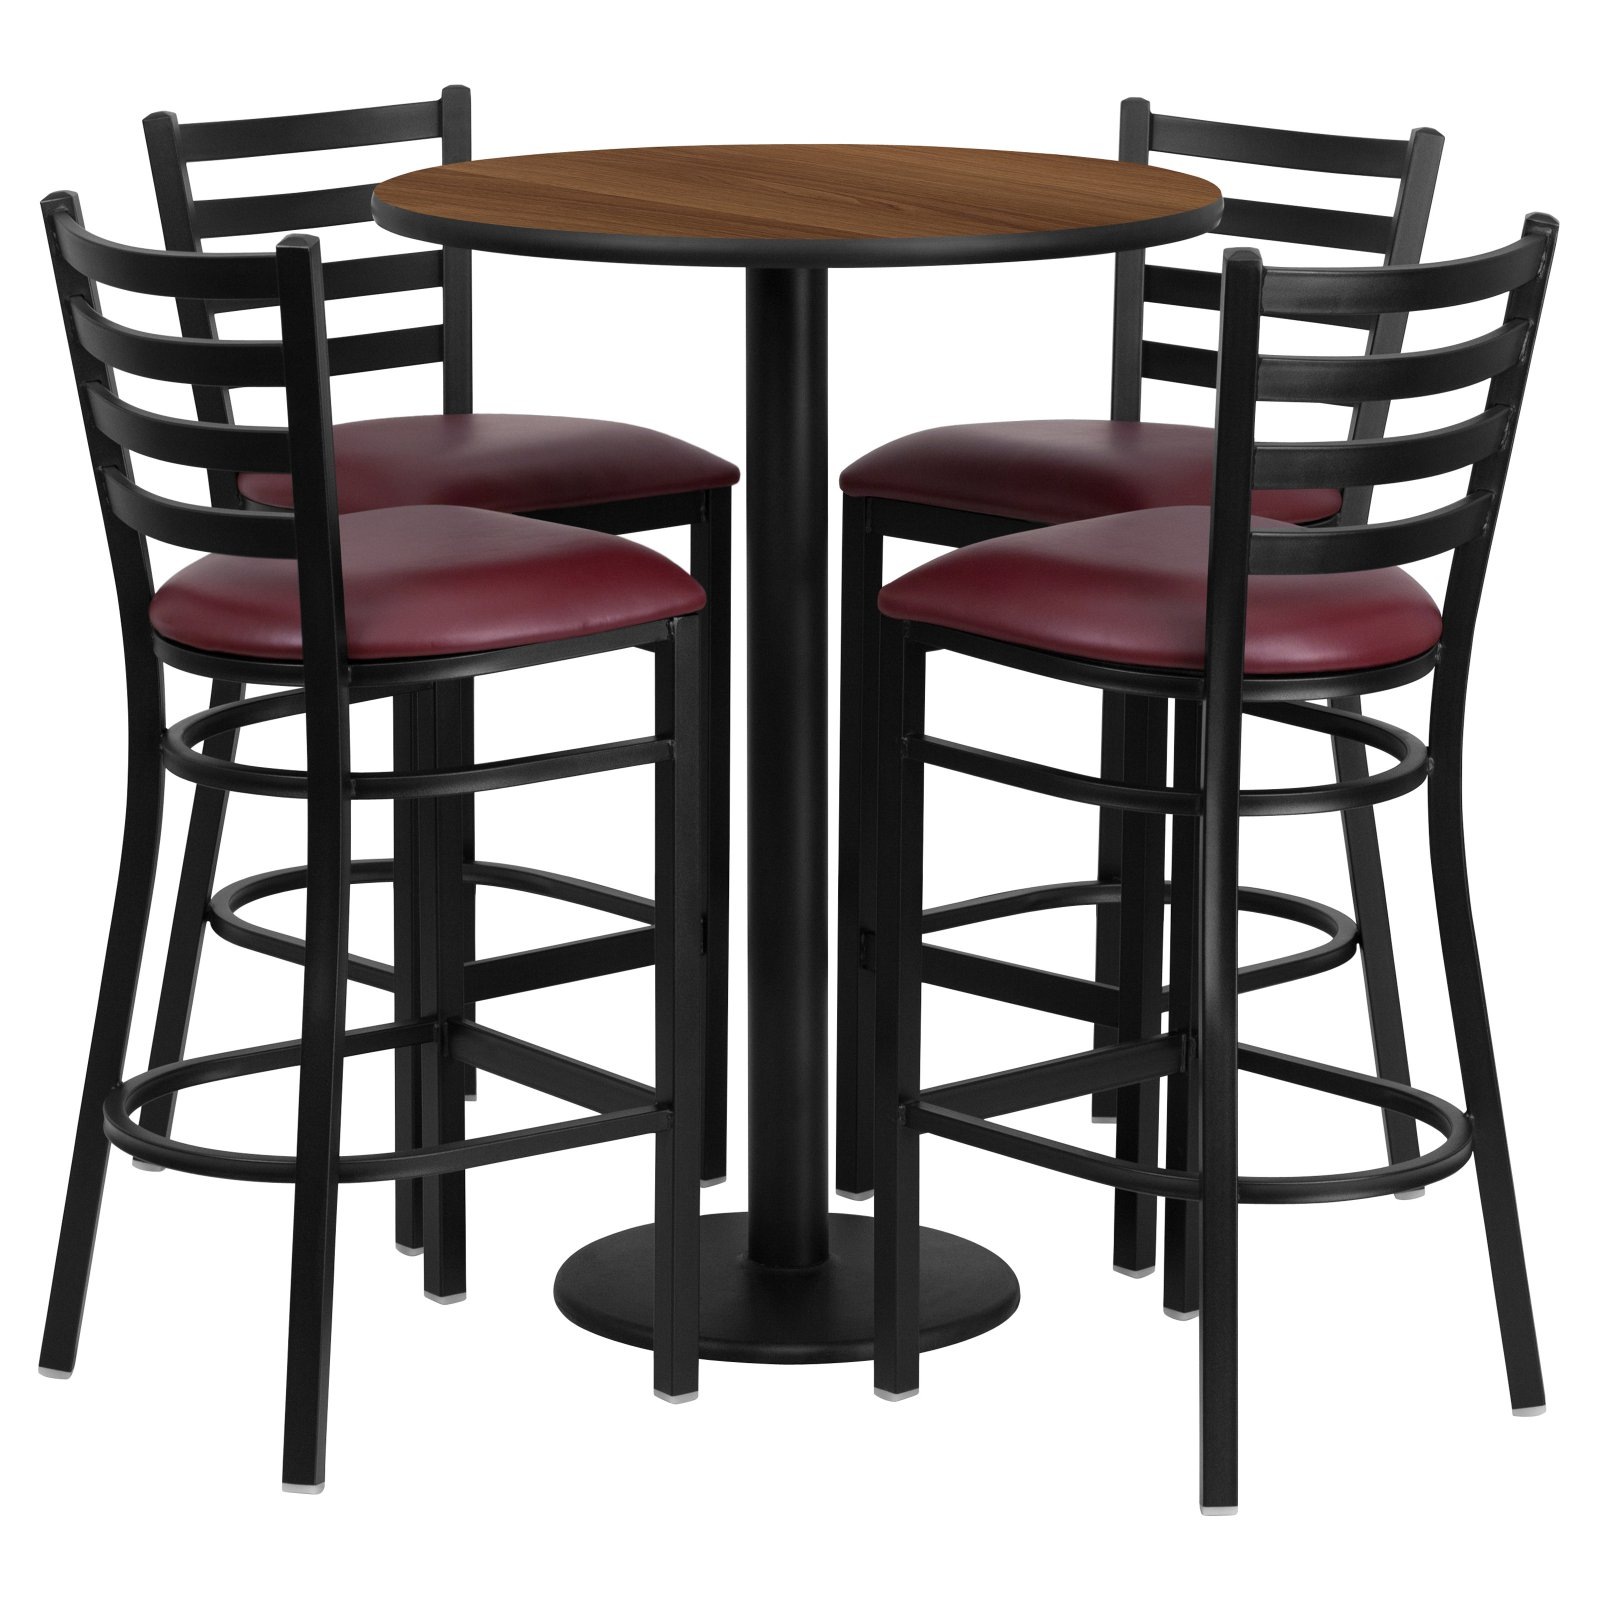 Flash Furniture 30'' Round Walnut Laminate Table Set with 4 Ladder Back Metal Barstools, Burgundy Vinyl Seat